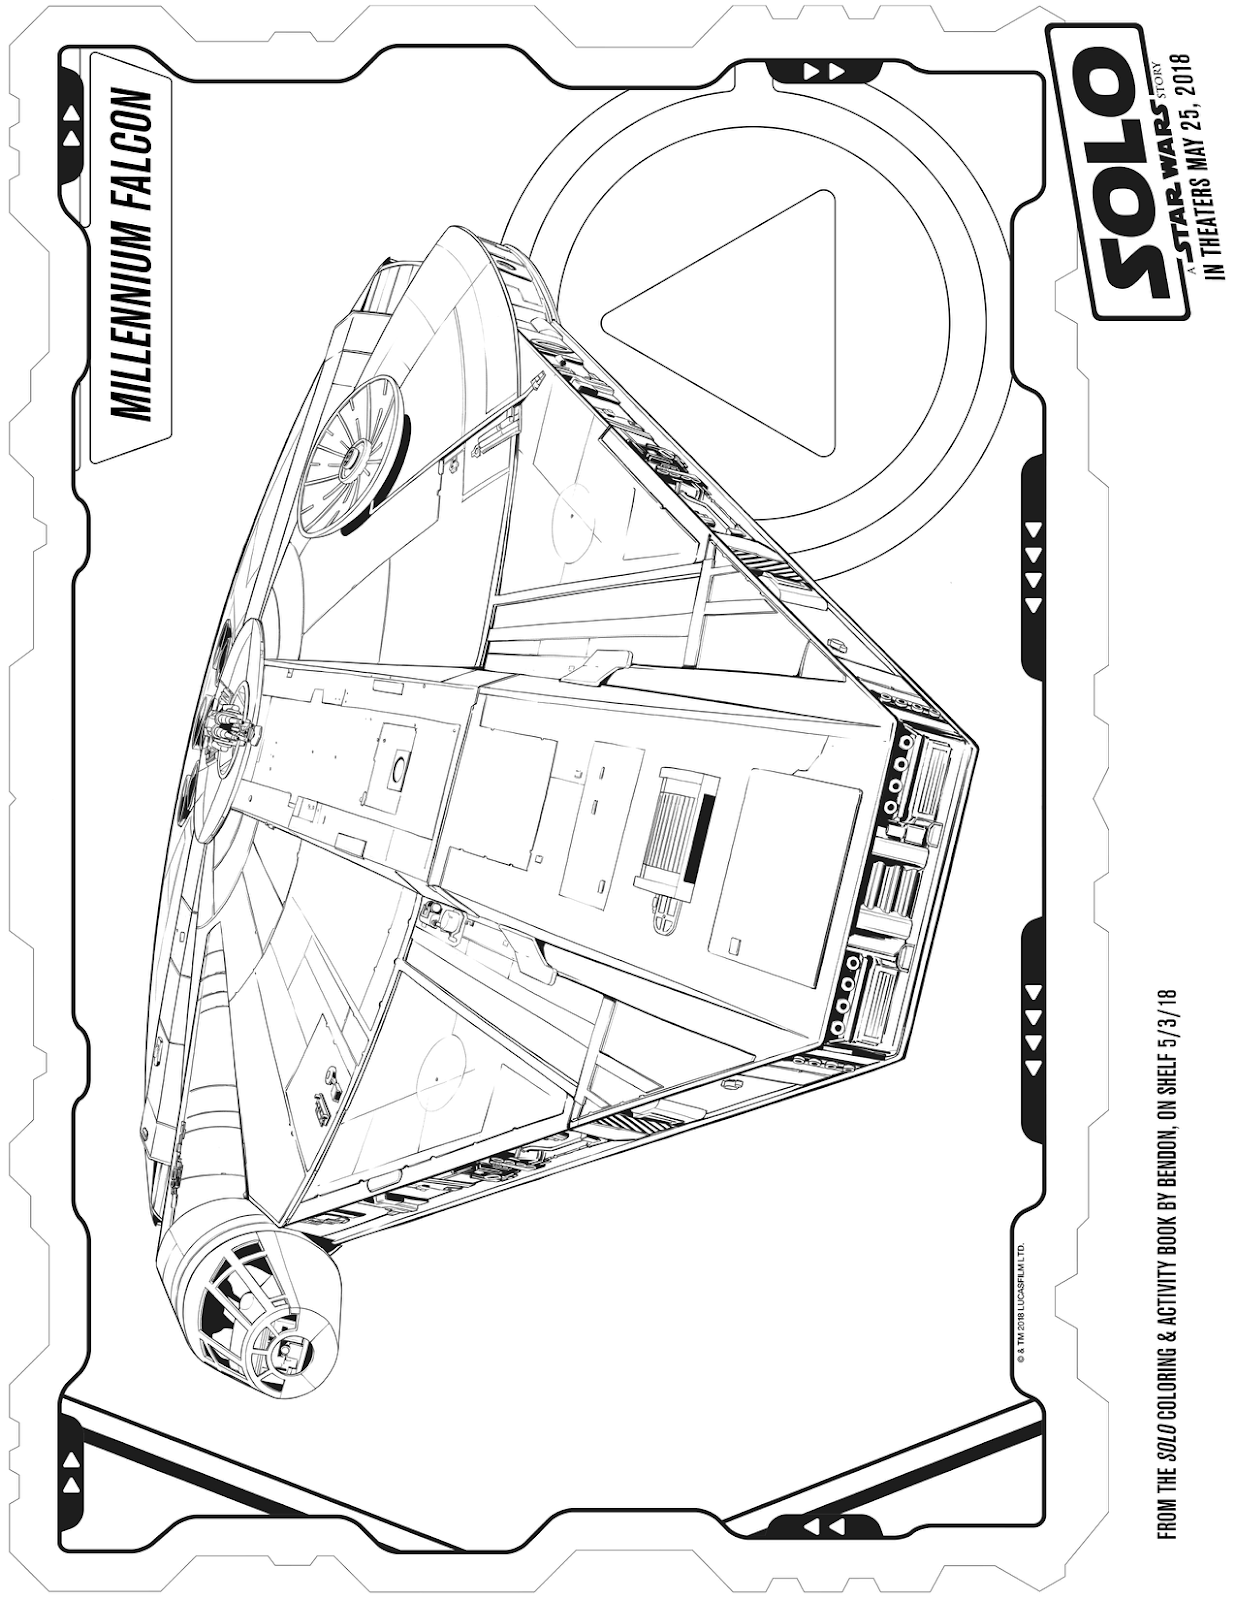 solo a star wars story dad review coloring sheets happy mess Star Wars Saga Edition Resources download pdf file here